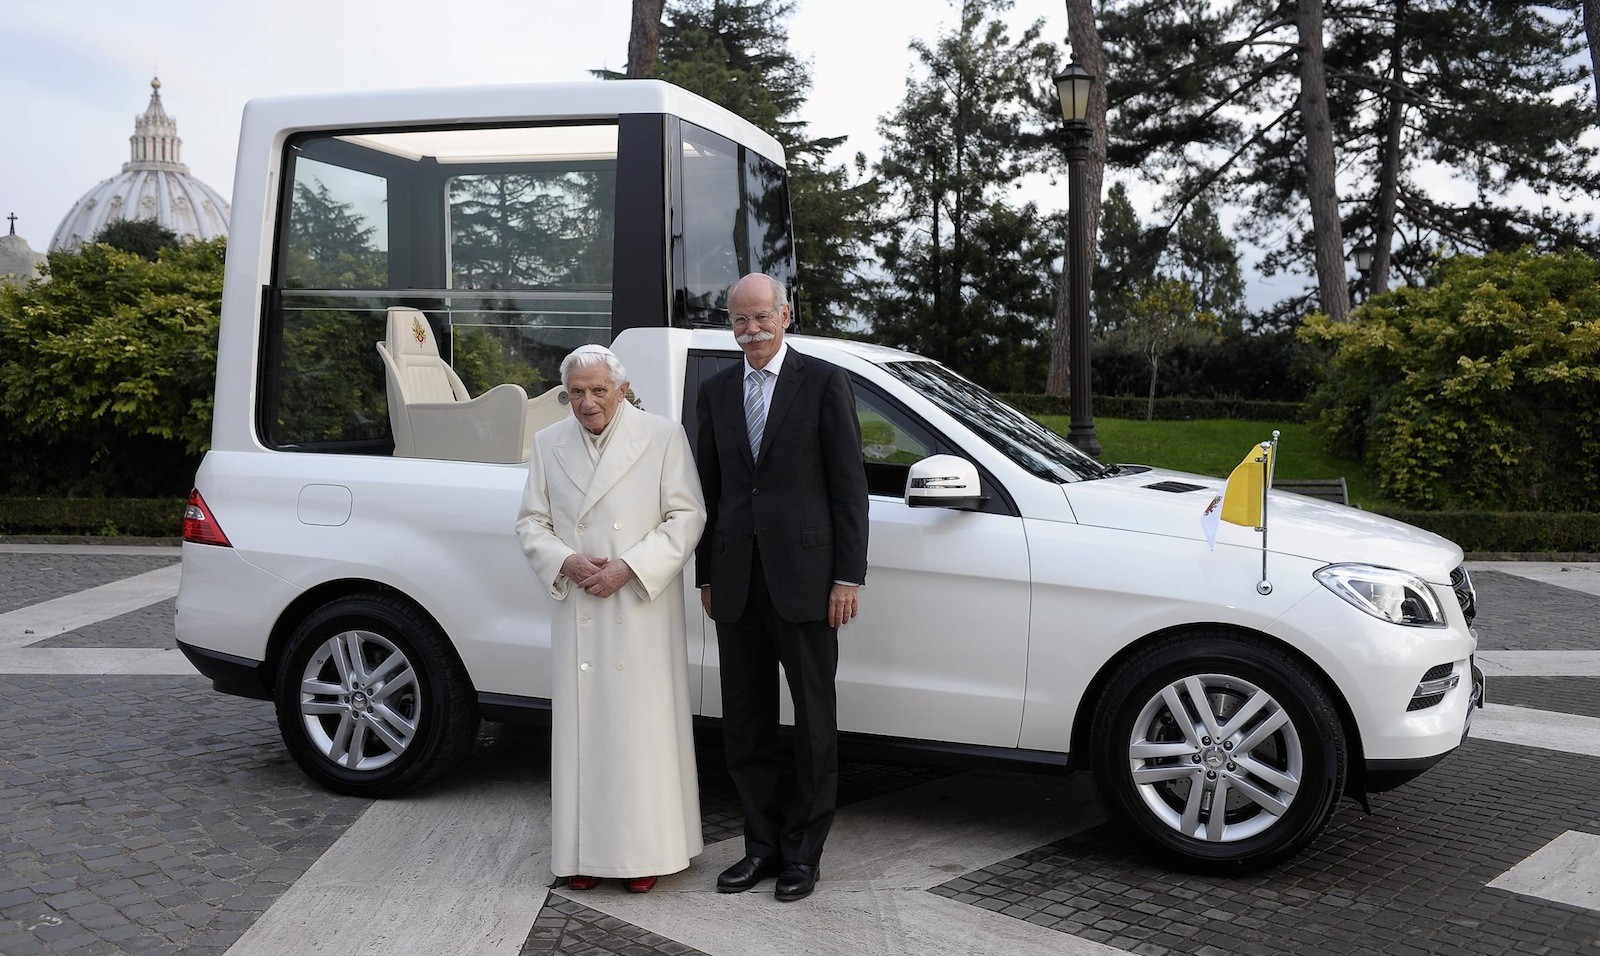 History of the Popemobile - From a horse-drawn carriage to Jeep Wrangler